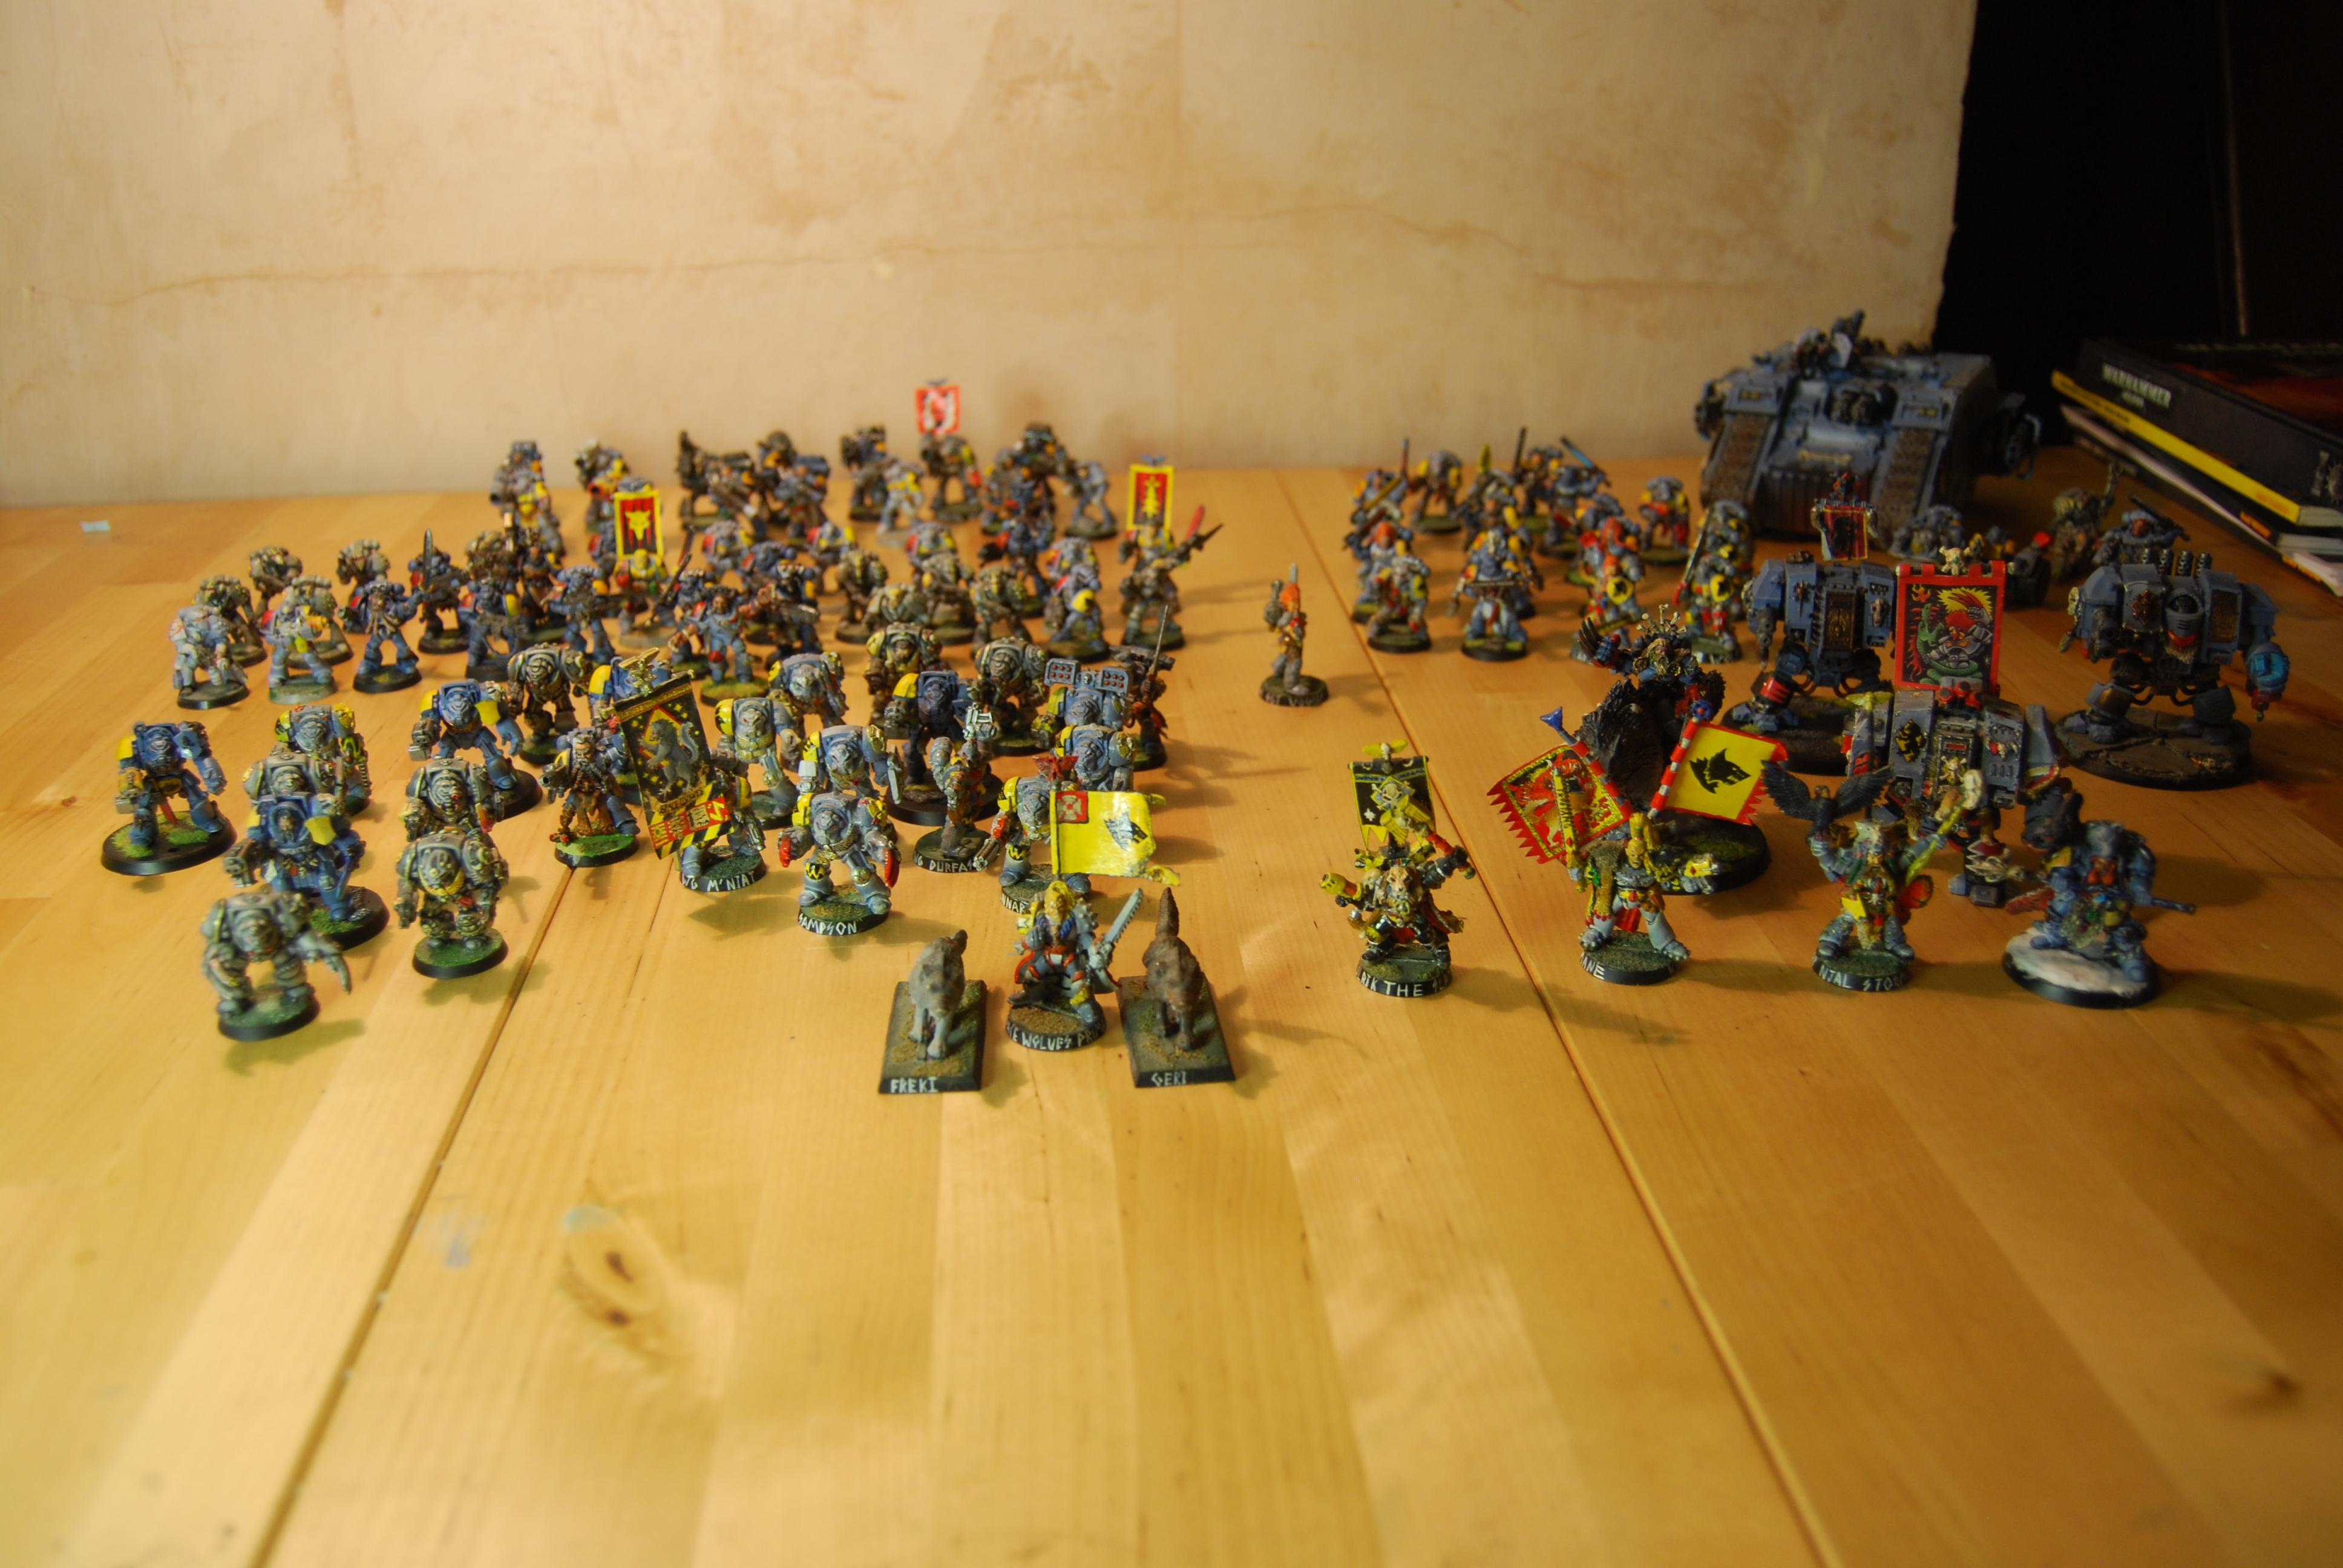 Space Wolves Army, My army (3600+) so far and growing!!!!